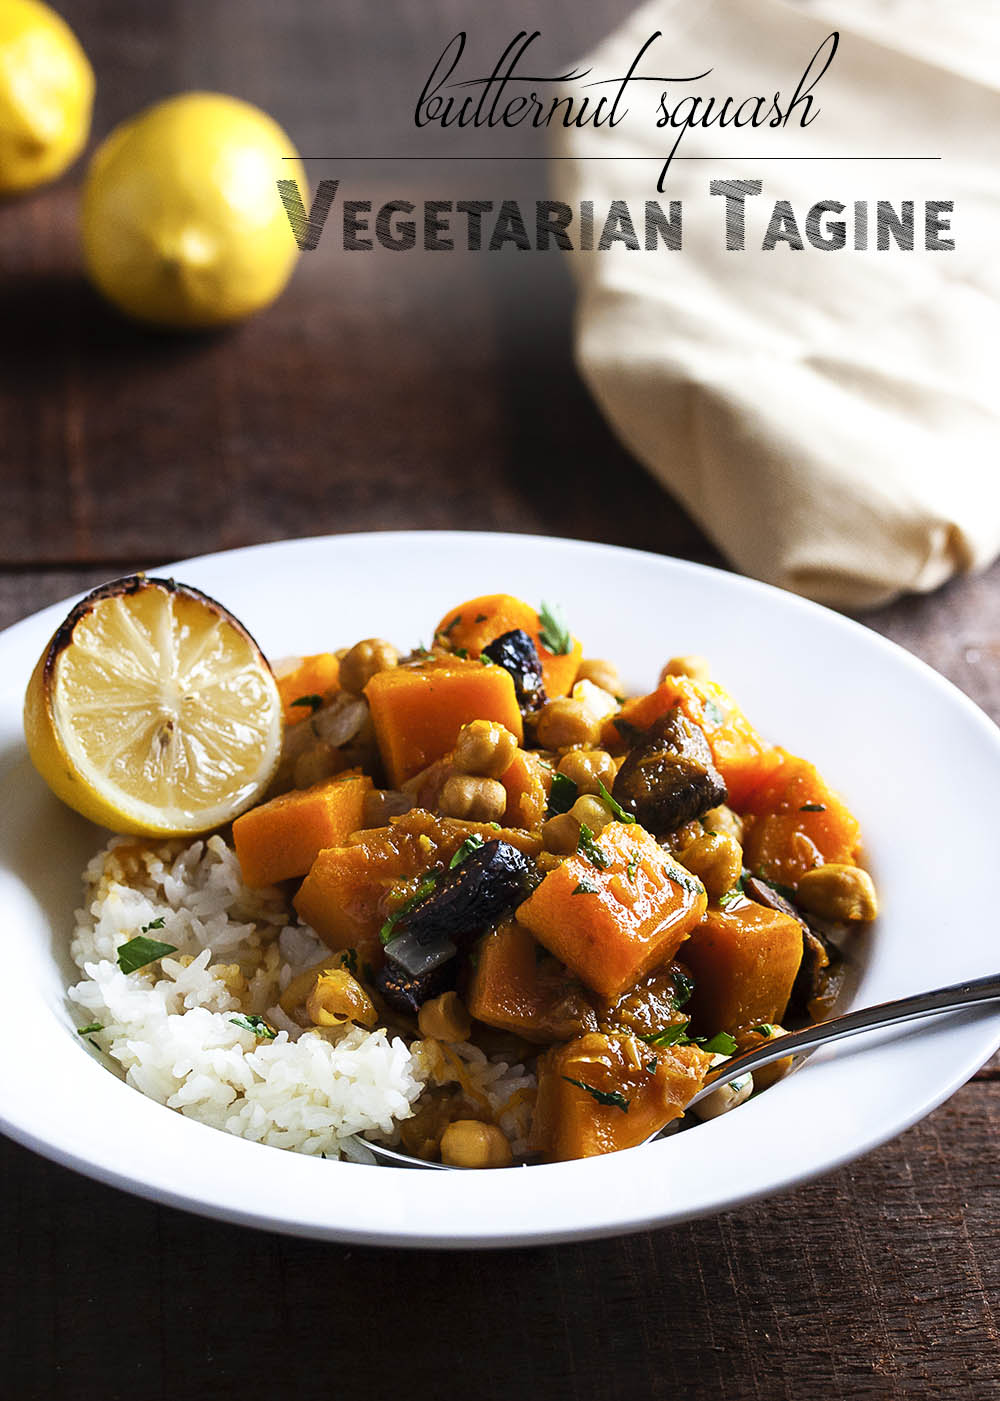 Vegetarian Butternut Squash Tagine - Need a quick vegetarian entree? You won't miss the meat in this flavorful and rich tasting vegetarian butternut squash tagine. It's sweet and spicy and yummy. And it's vegan so long as you skip the optional yogurt! | justalittlebitofbacon.com